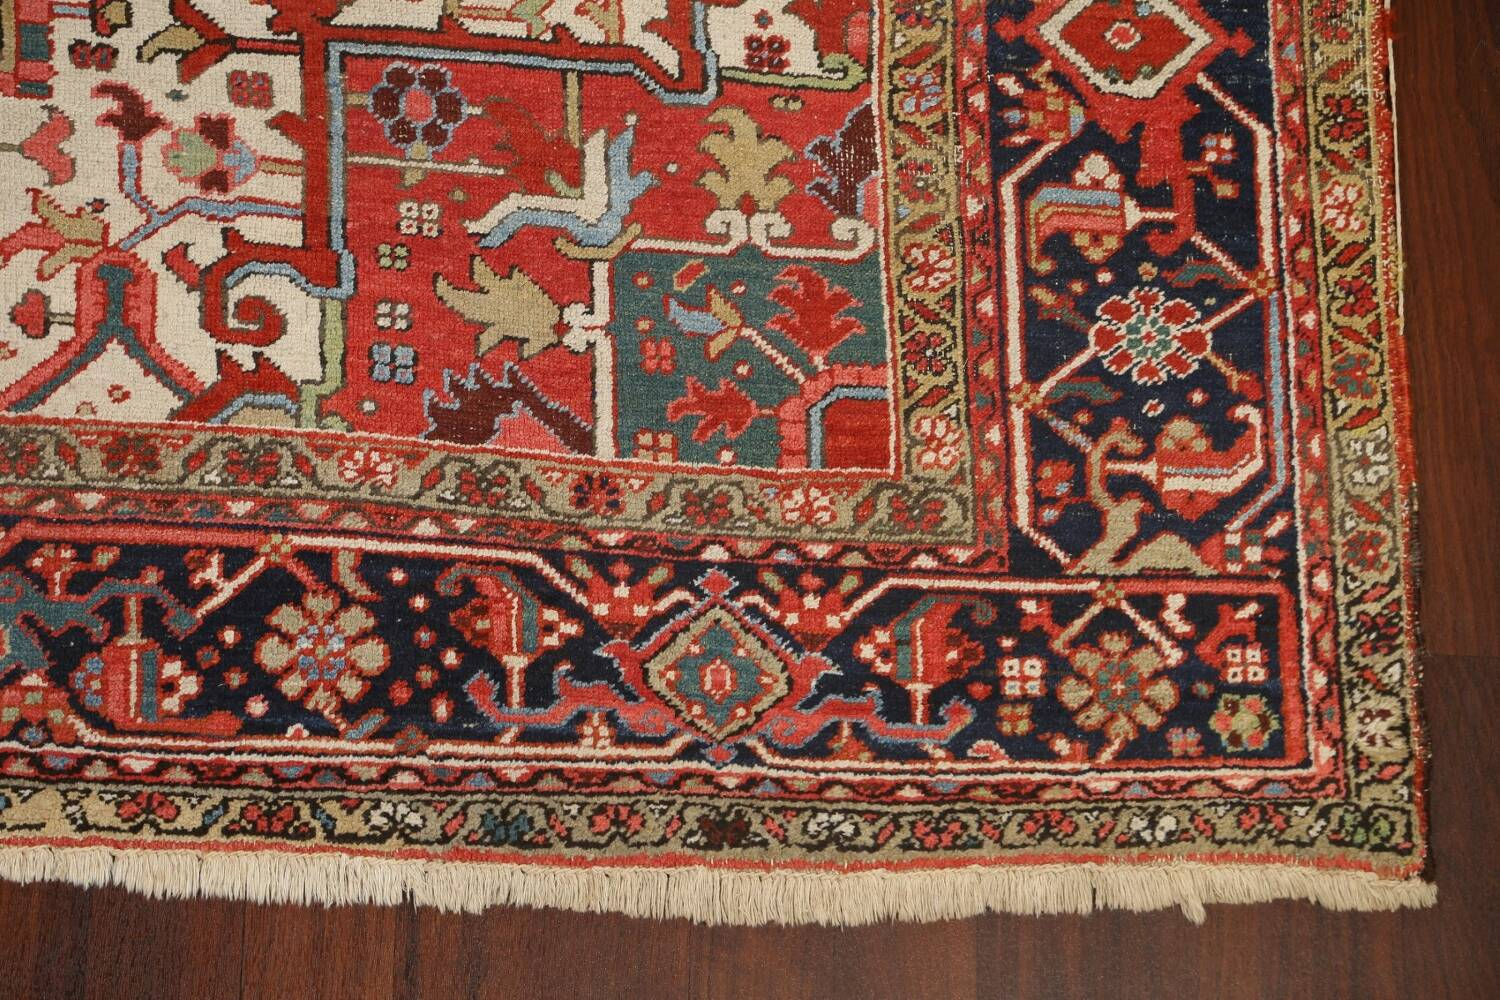 Pre-1900 Antique Vegetable Dye Heriz Serapi Persian Area Rug 10x13 image 5